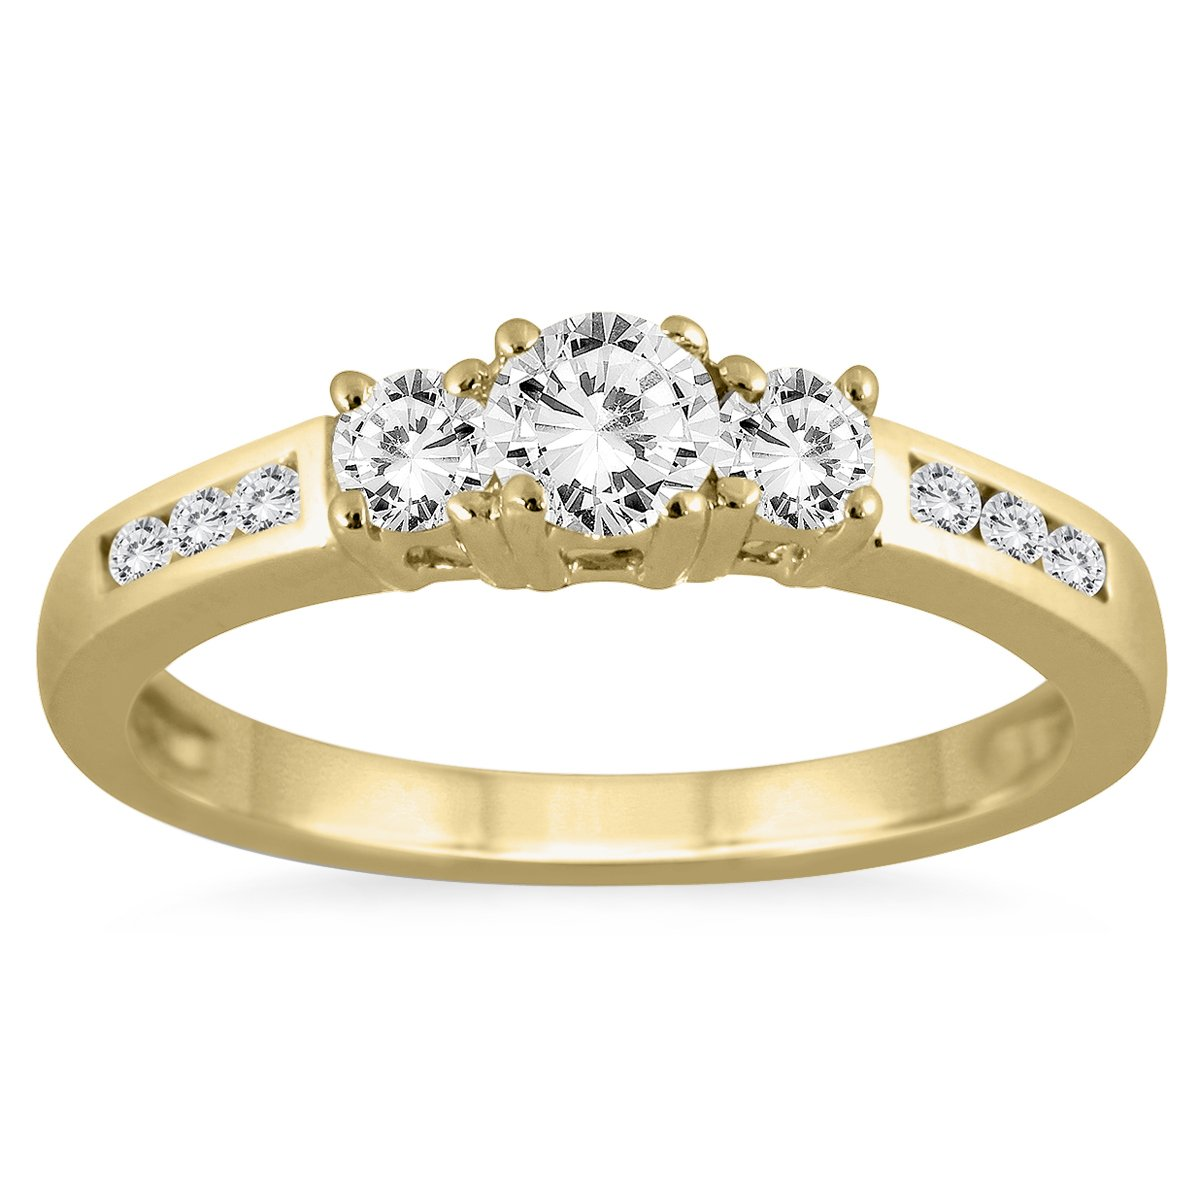 AGS Certified 1/2 Carat TW Diamond Three Stone Ring in 10K Yellow Gold (K-L Color, I2-I3 Clarity)